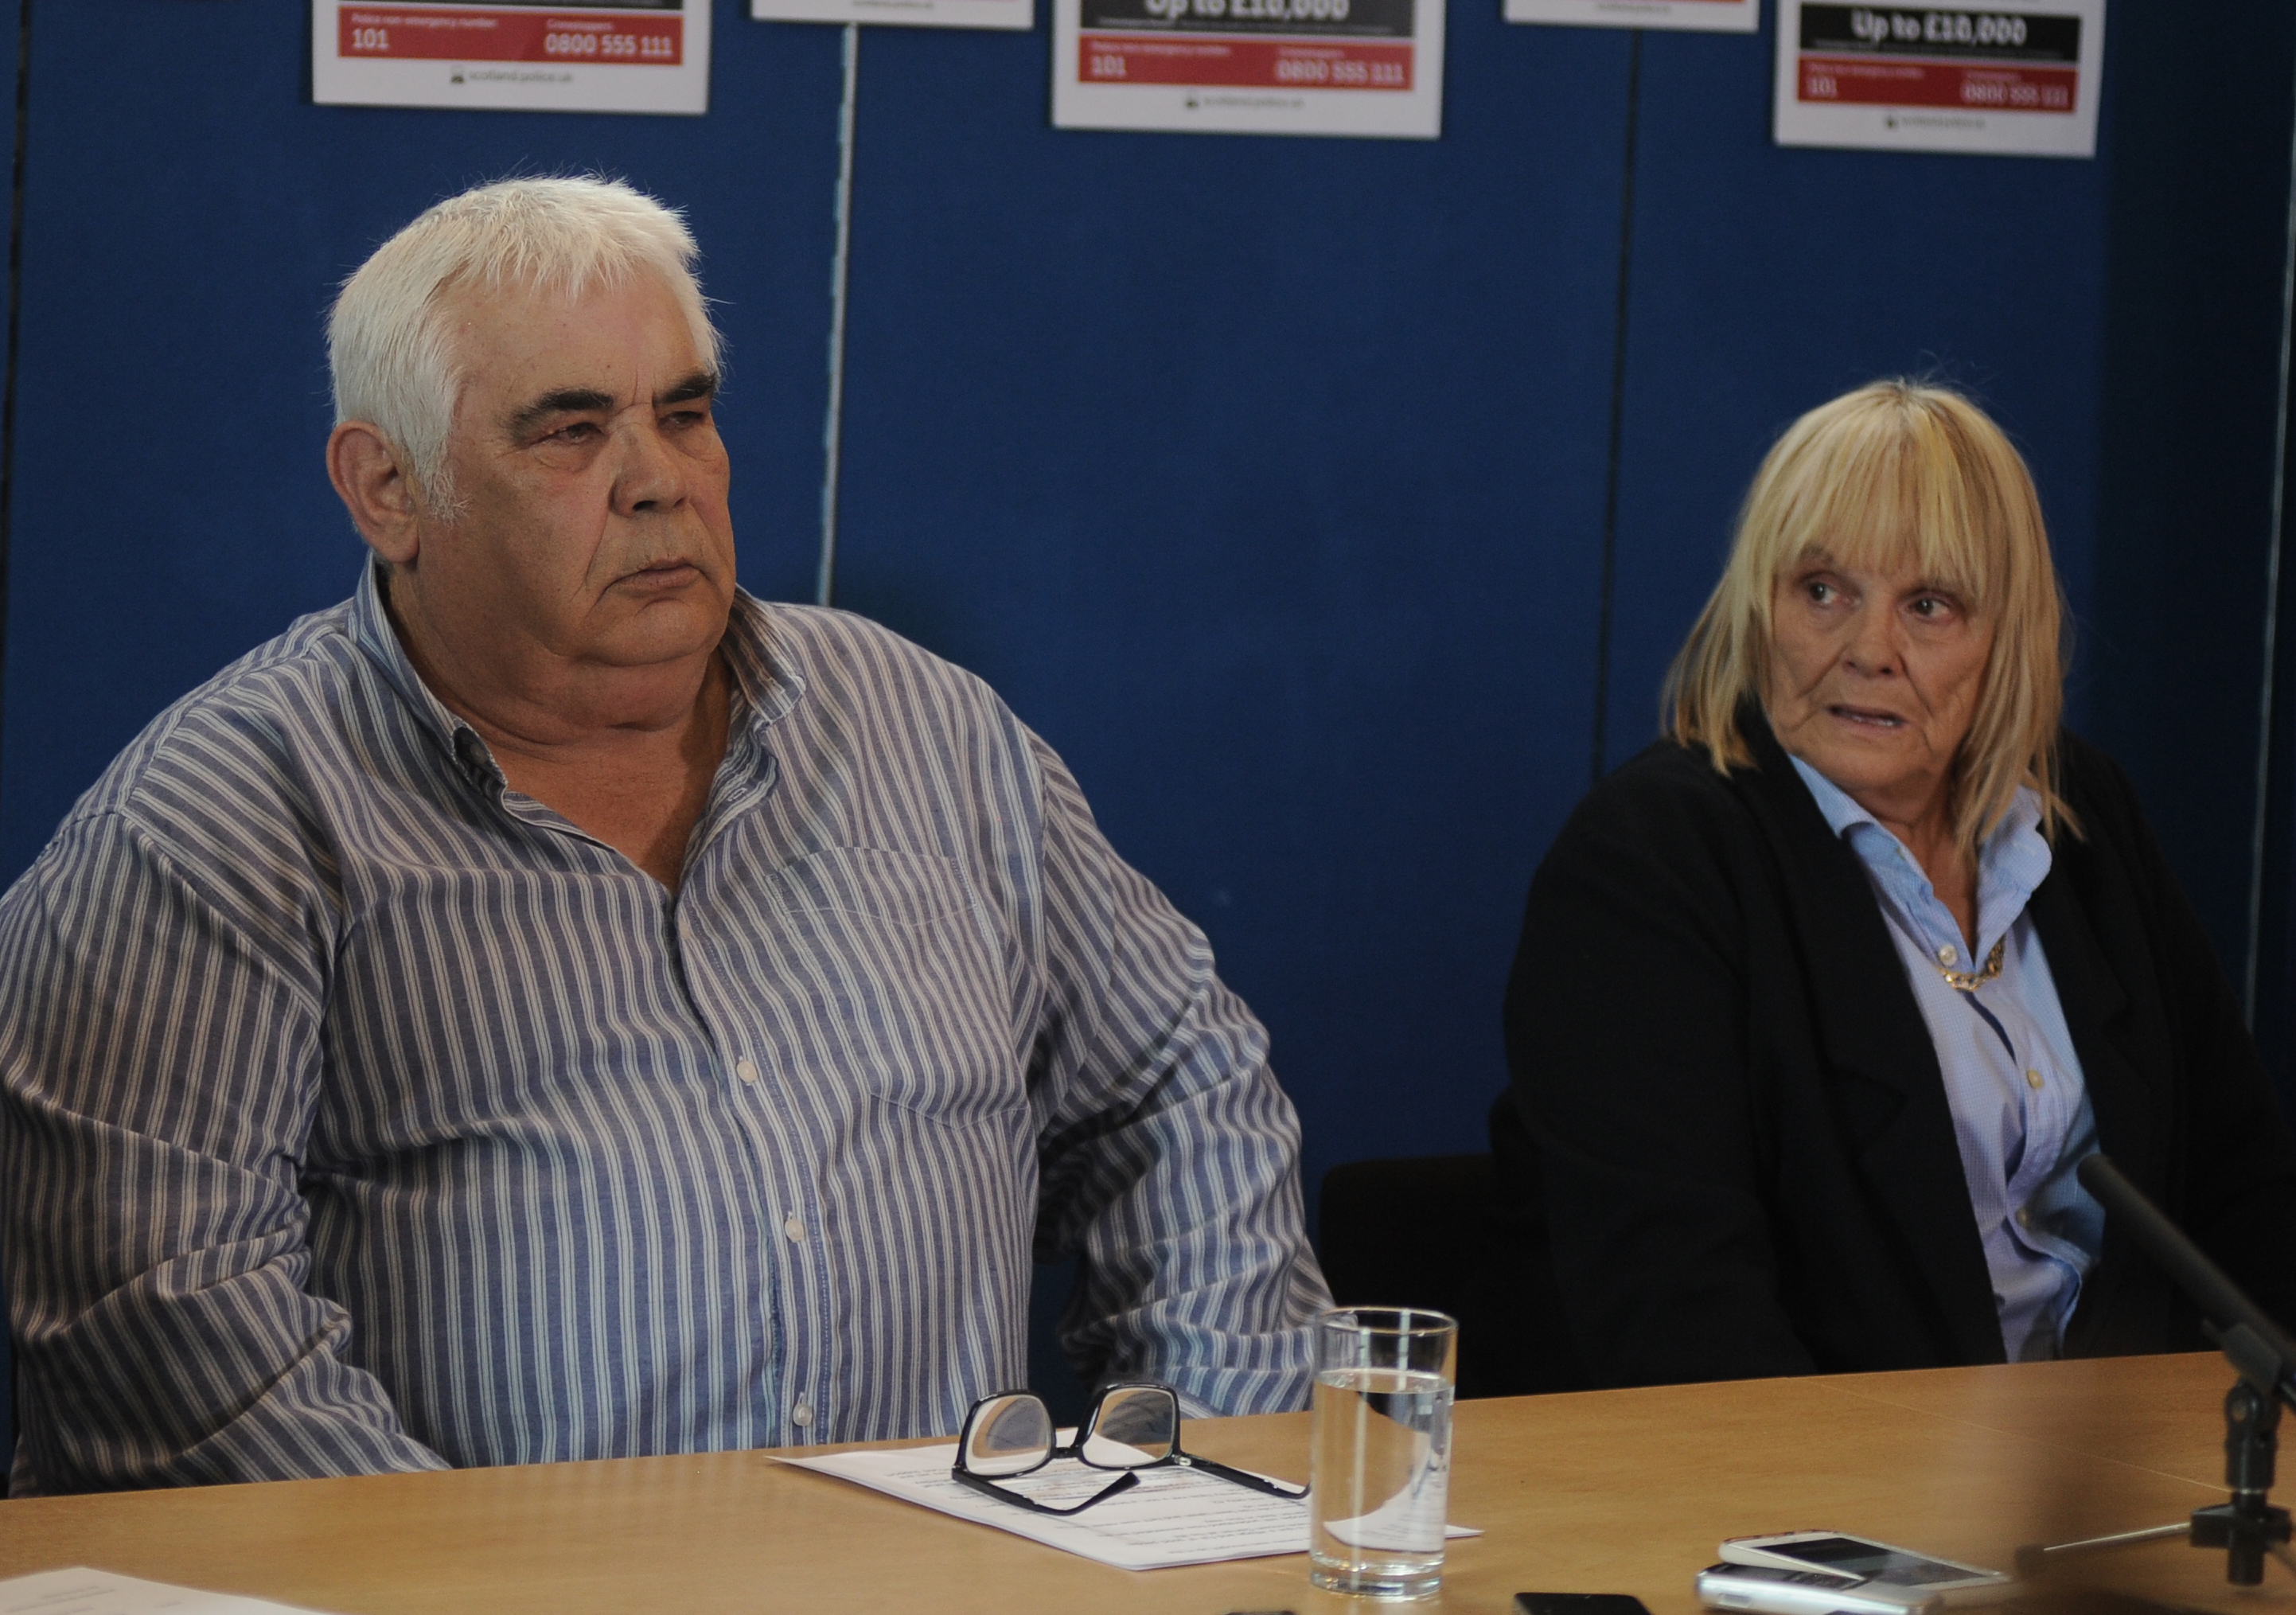 Darren Adie's parents John and Margaret addressing a press conference.